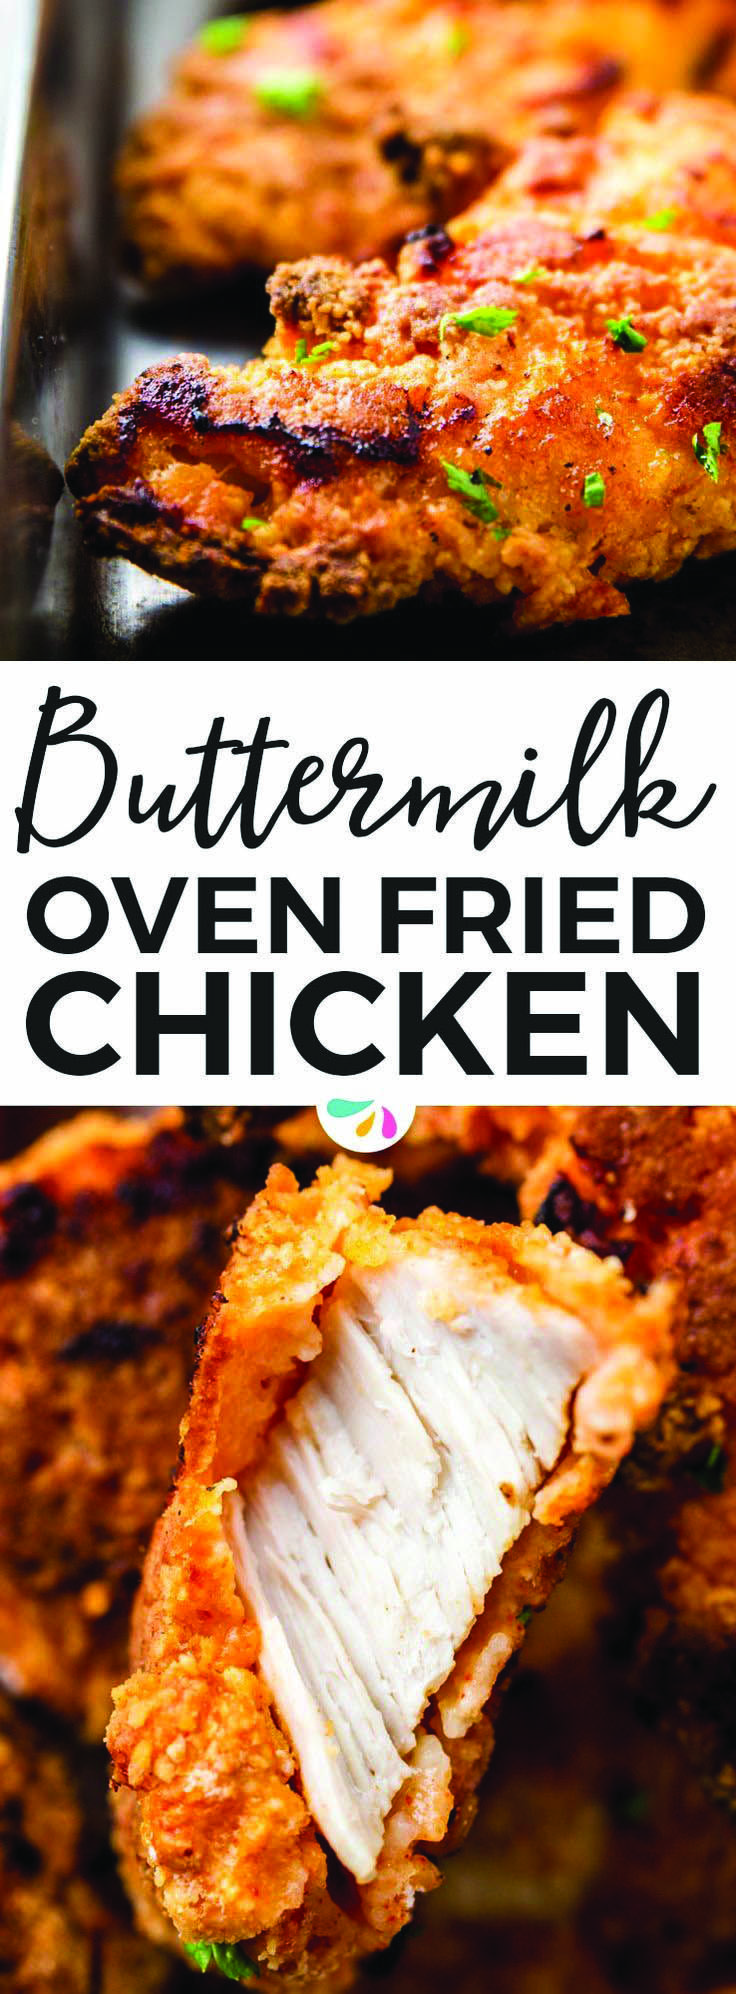 Best Anytime Baked Chicken Tenders Corn Flakes Special On I Healthy Recipes Site Makanan Kafe